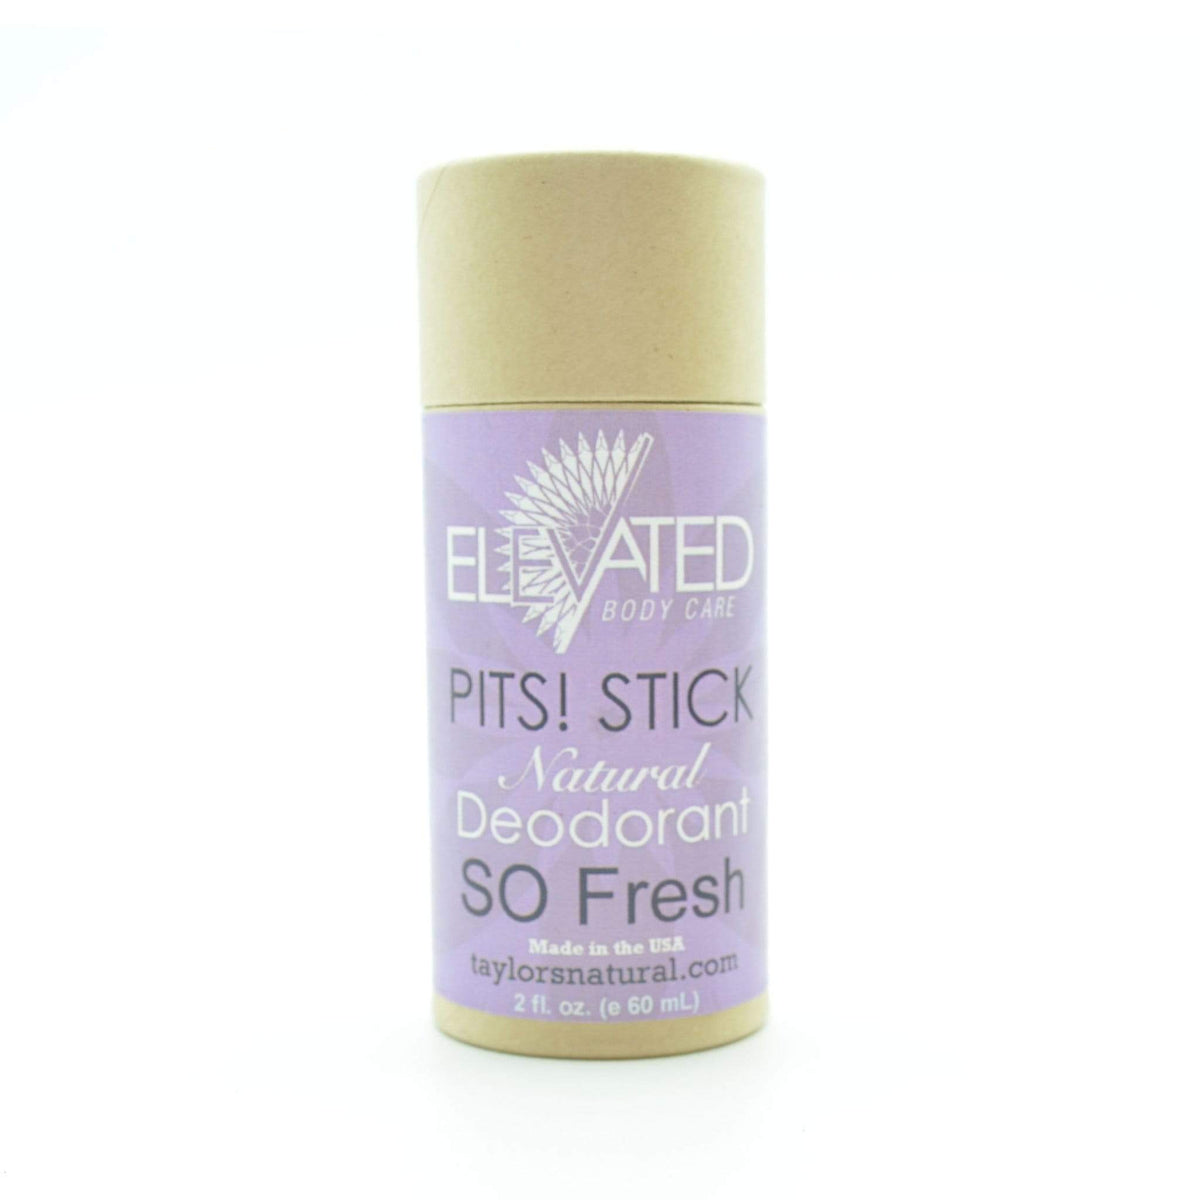 Elevated Pits! Natural Deodorant Stick - So Fresh